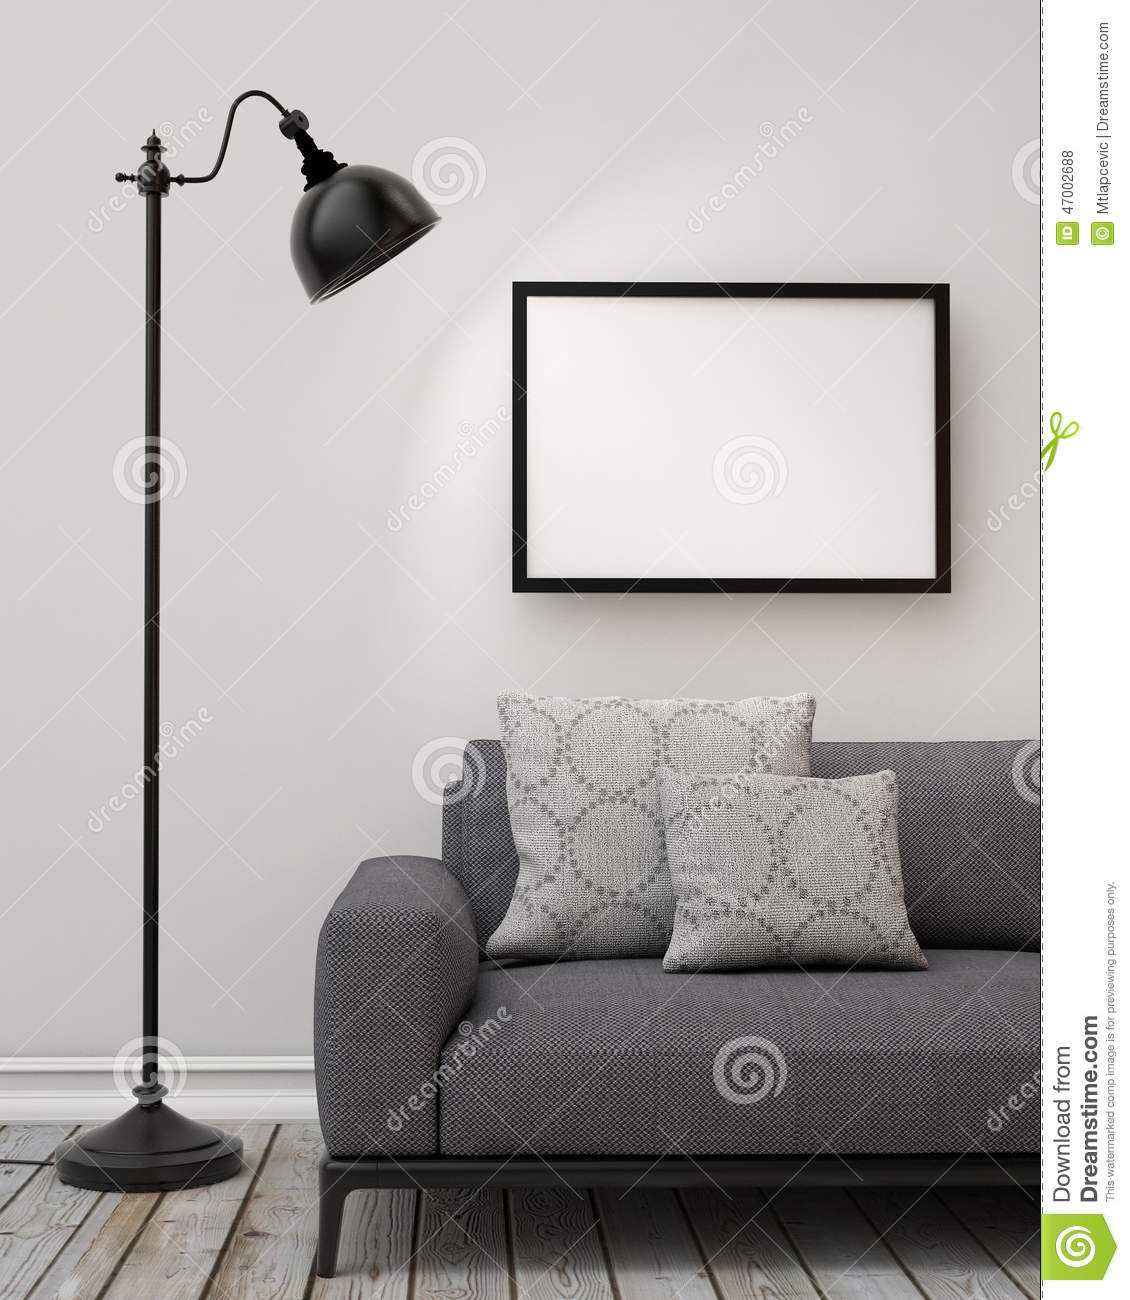 Royalty Free Illustration Download Mock Up Blank Poster On The Wall Of Living Room Background